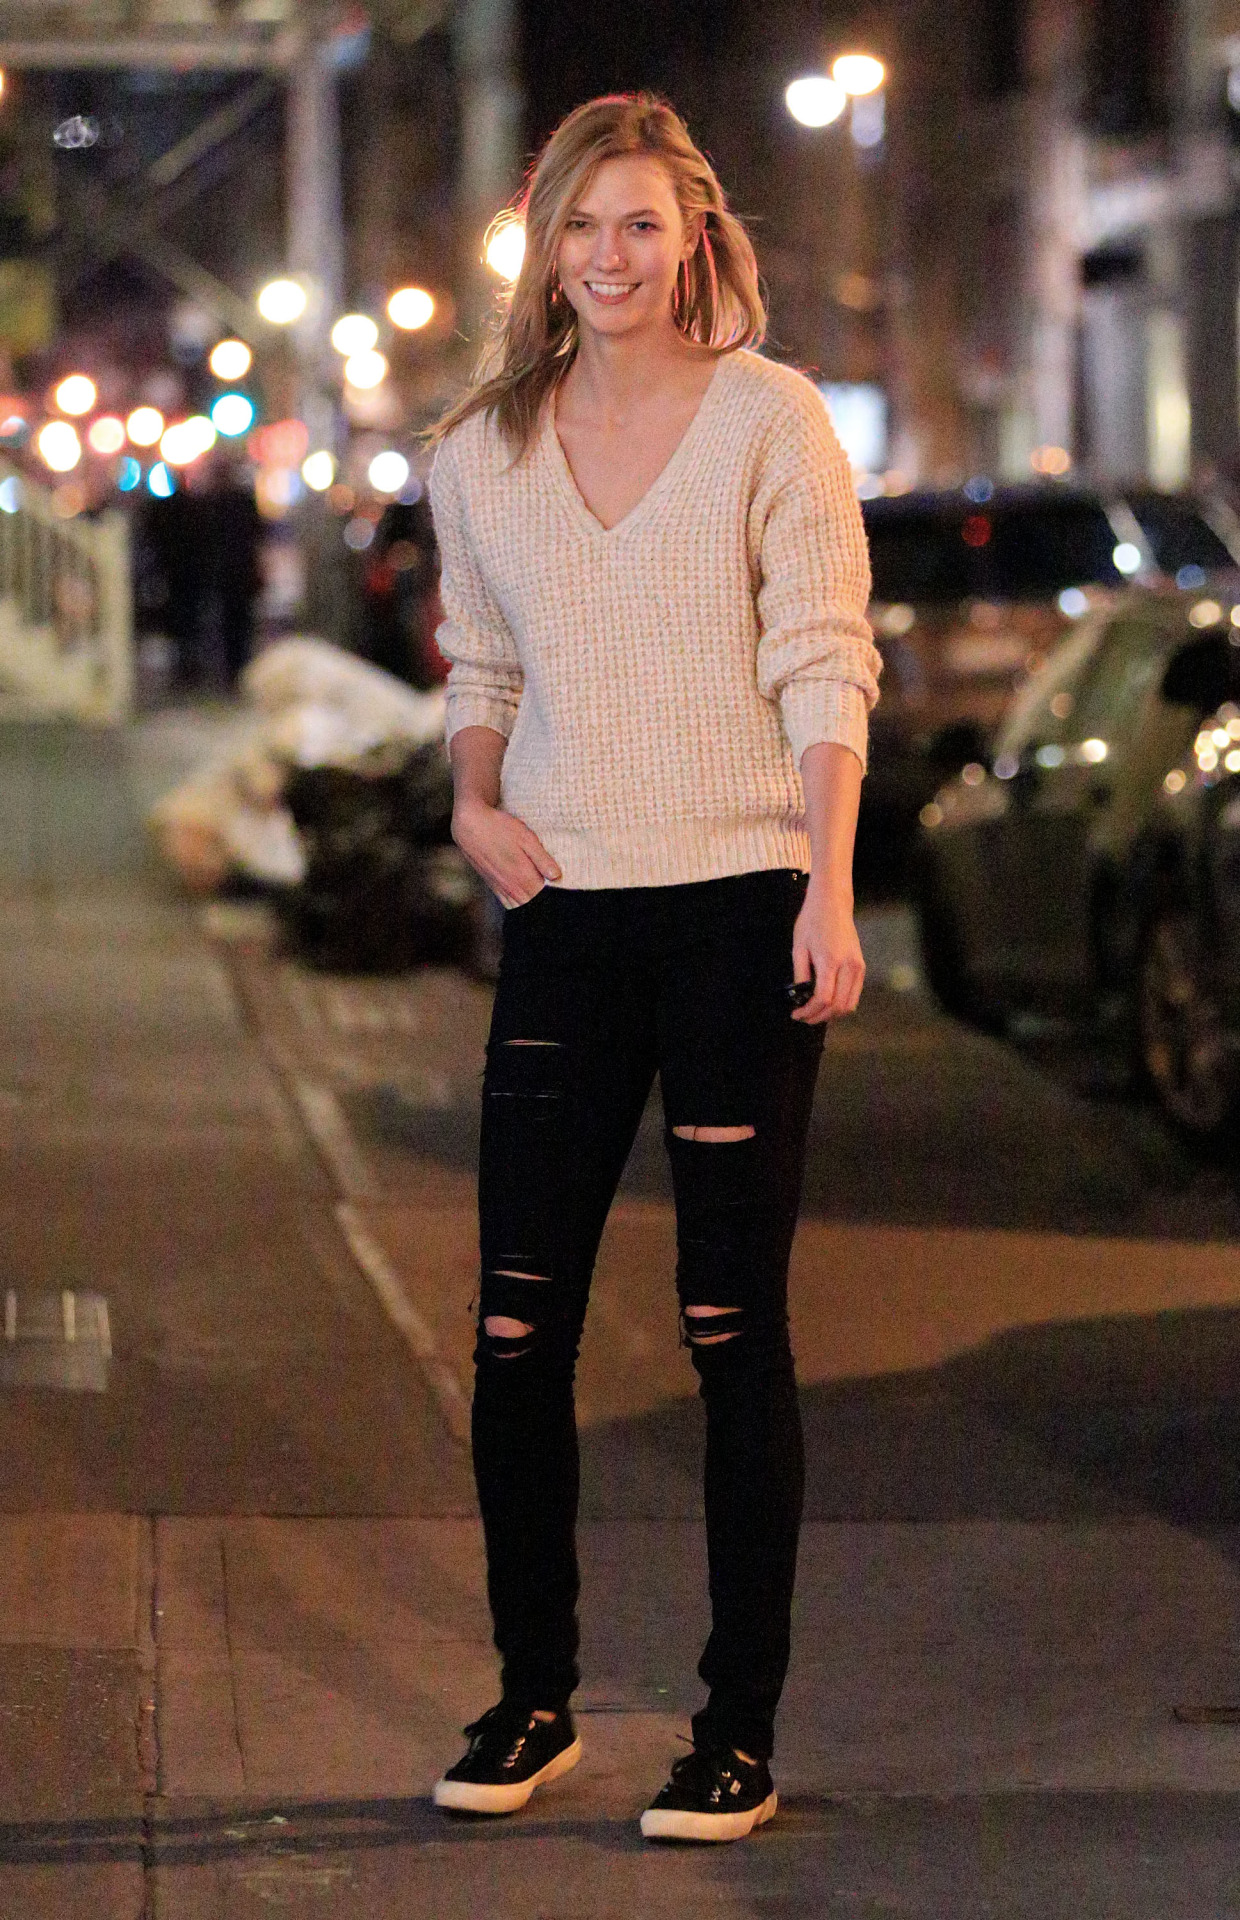 Karlie Kloss stepped out in NYC wearing  Superga Cotu Classics ,  Frame Denim Le Color Jeans in Film Noir  and a Wilfred For Aritzia Baudin Sweater in Bone.